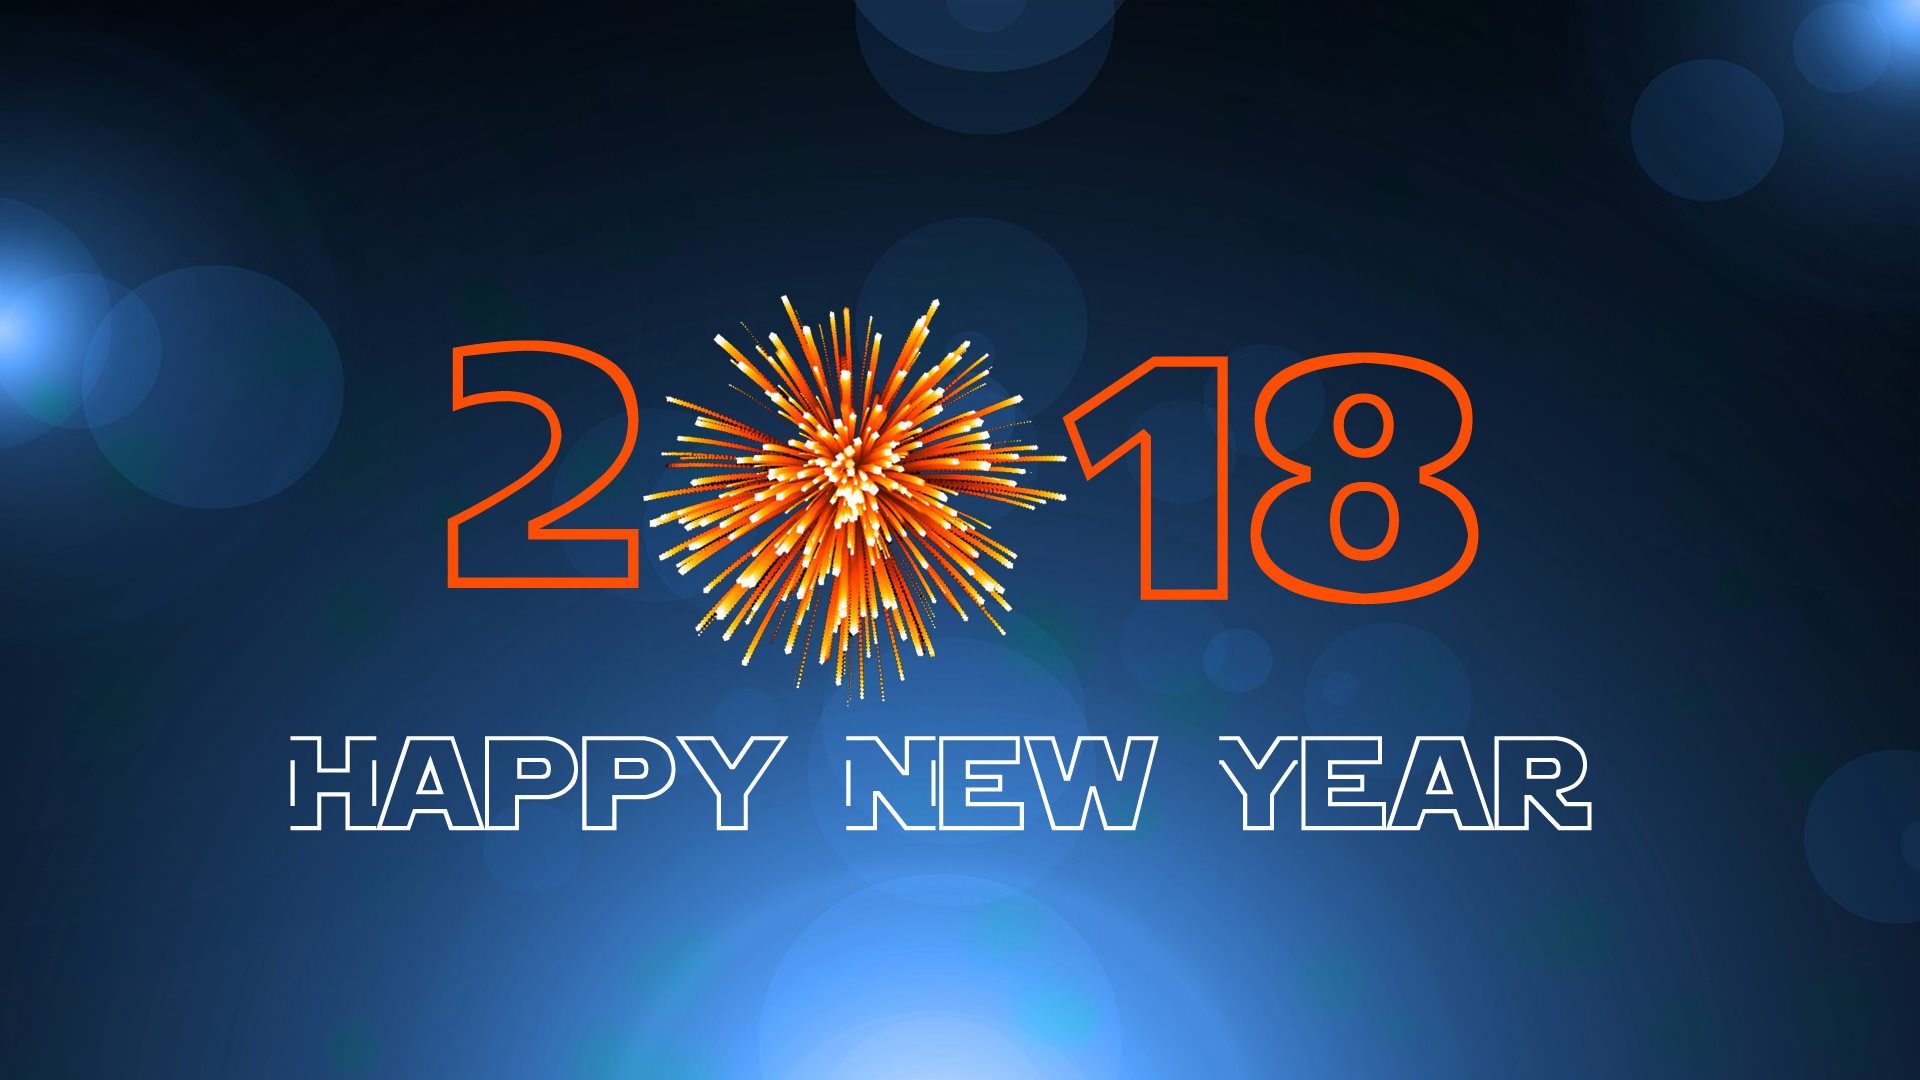 special happy new year